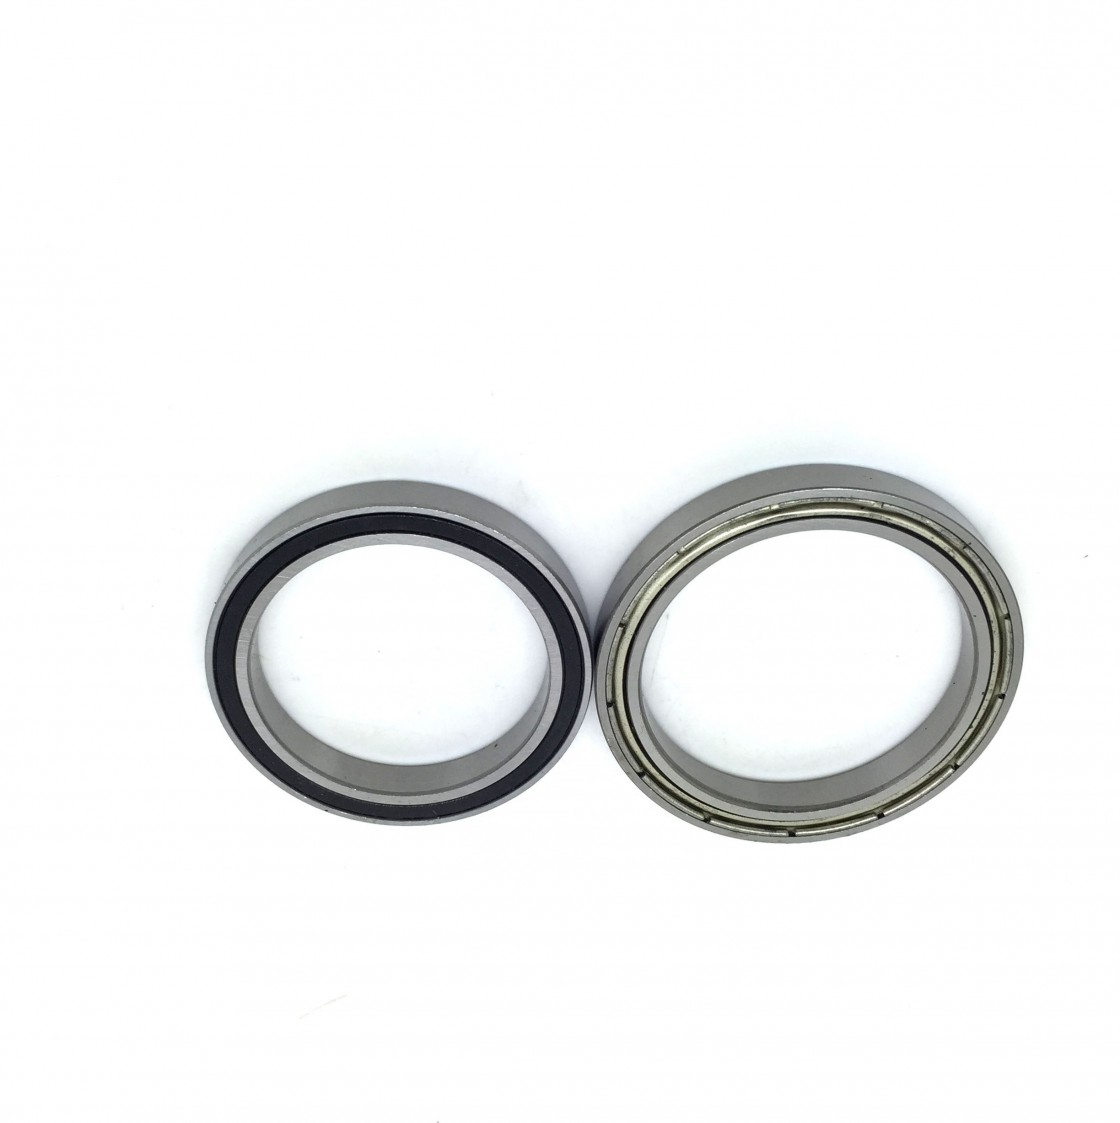 High precision manufacture 6204 6205 6206 6207 6208 seals deep groove ball bearing